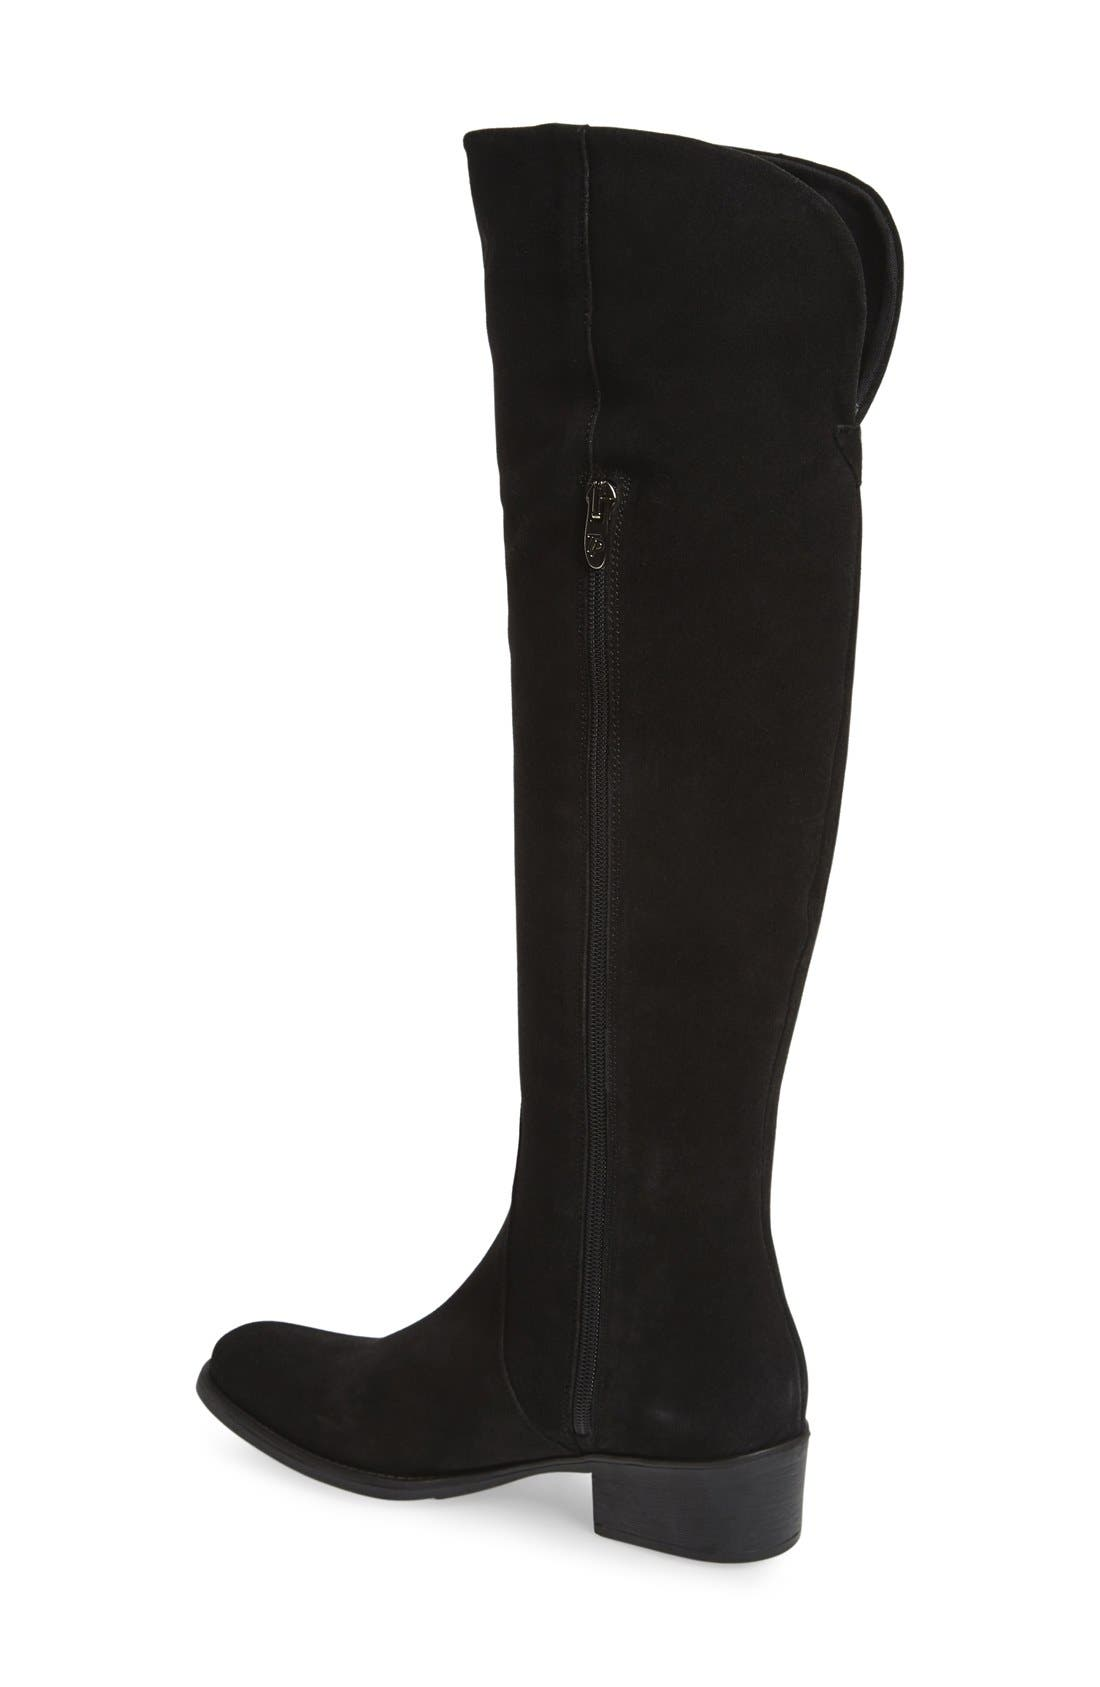 Alternate Image 2  - Toni Pons 'Tallin' Over-The-Knee Riding Boot (Women)